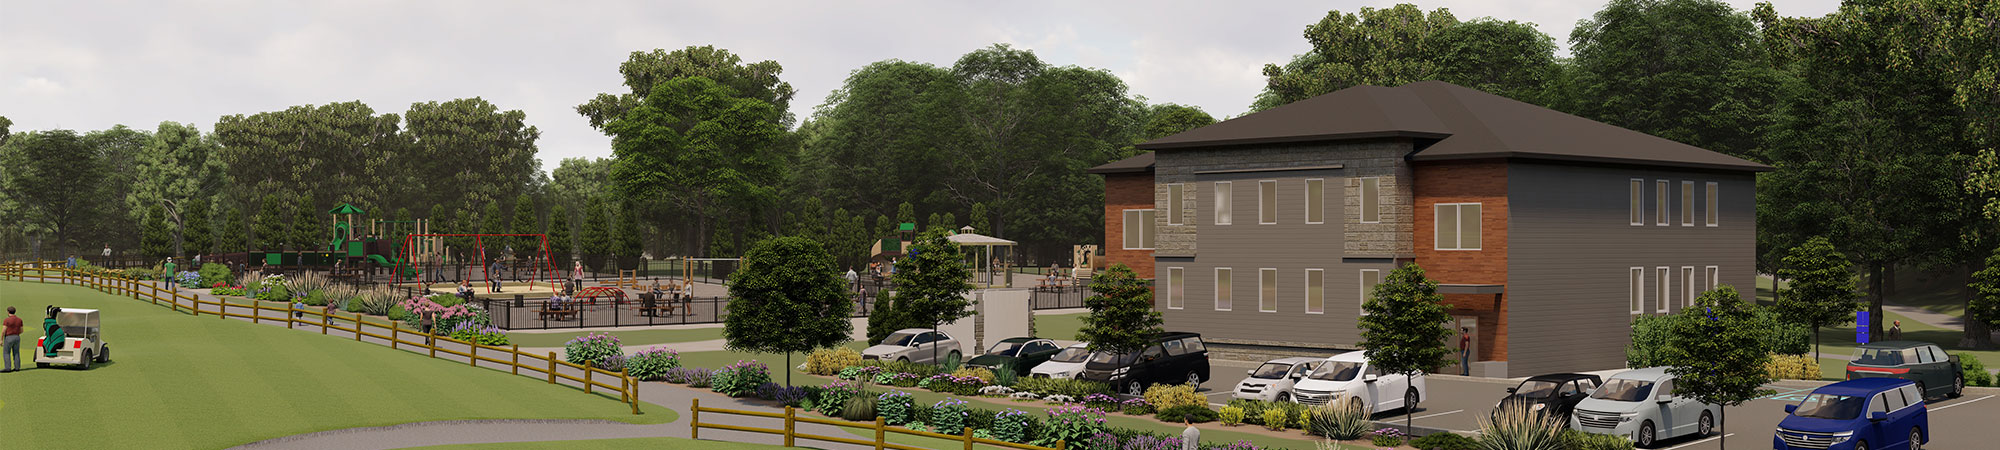 The Parke Development in Lakewood